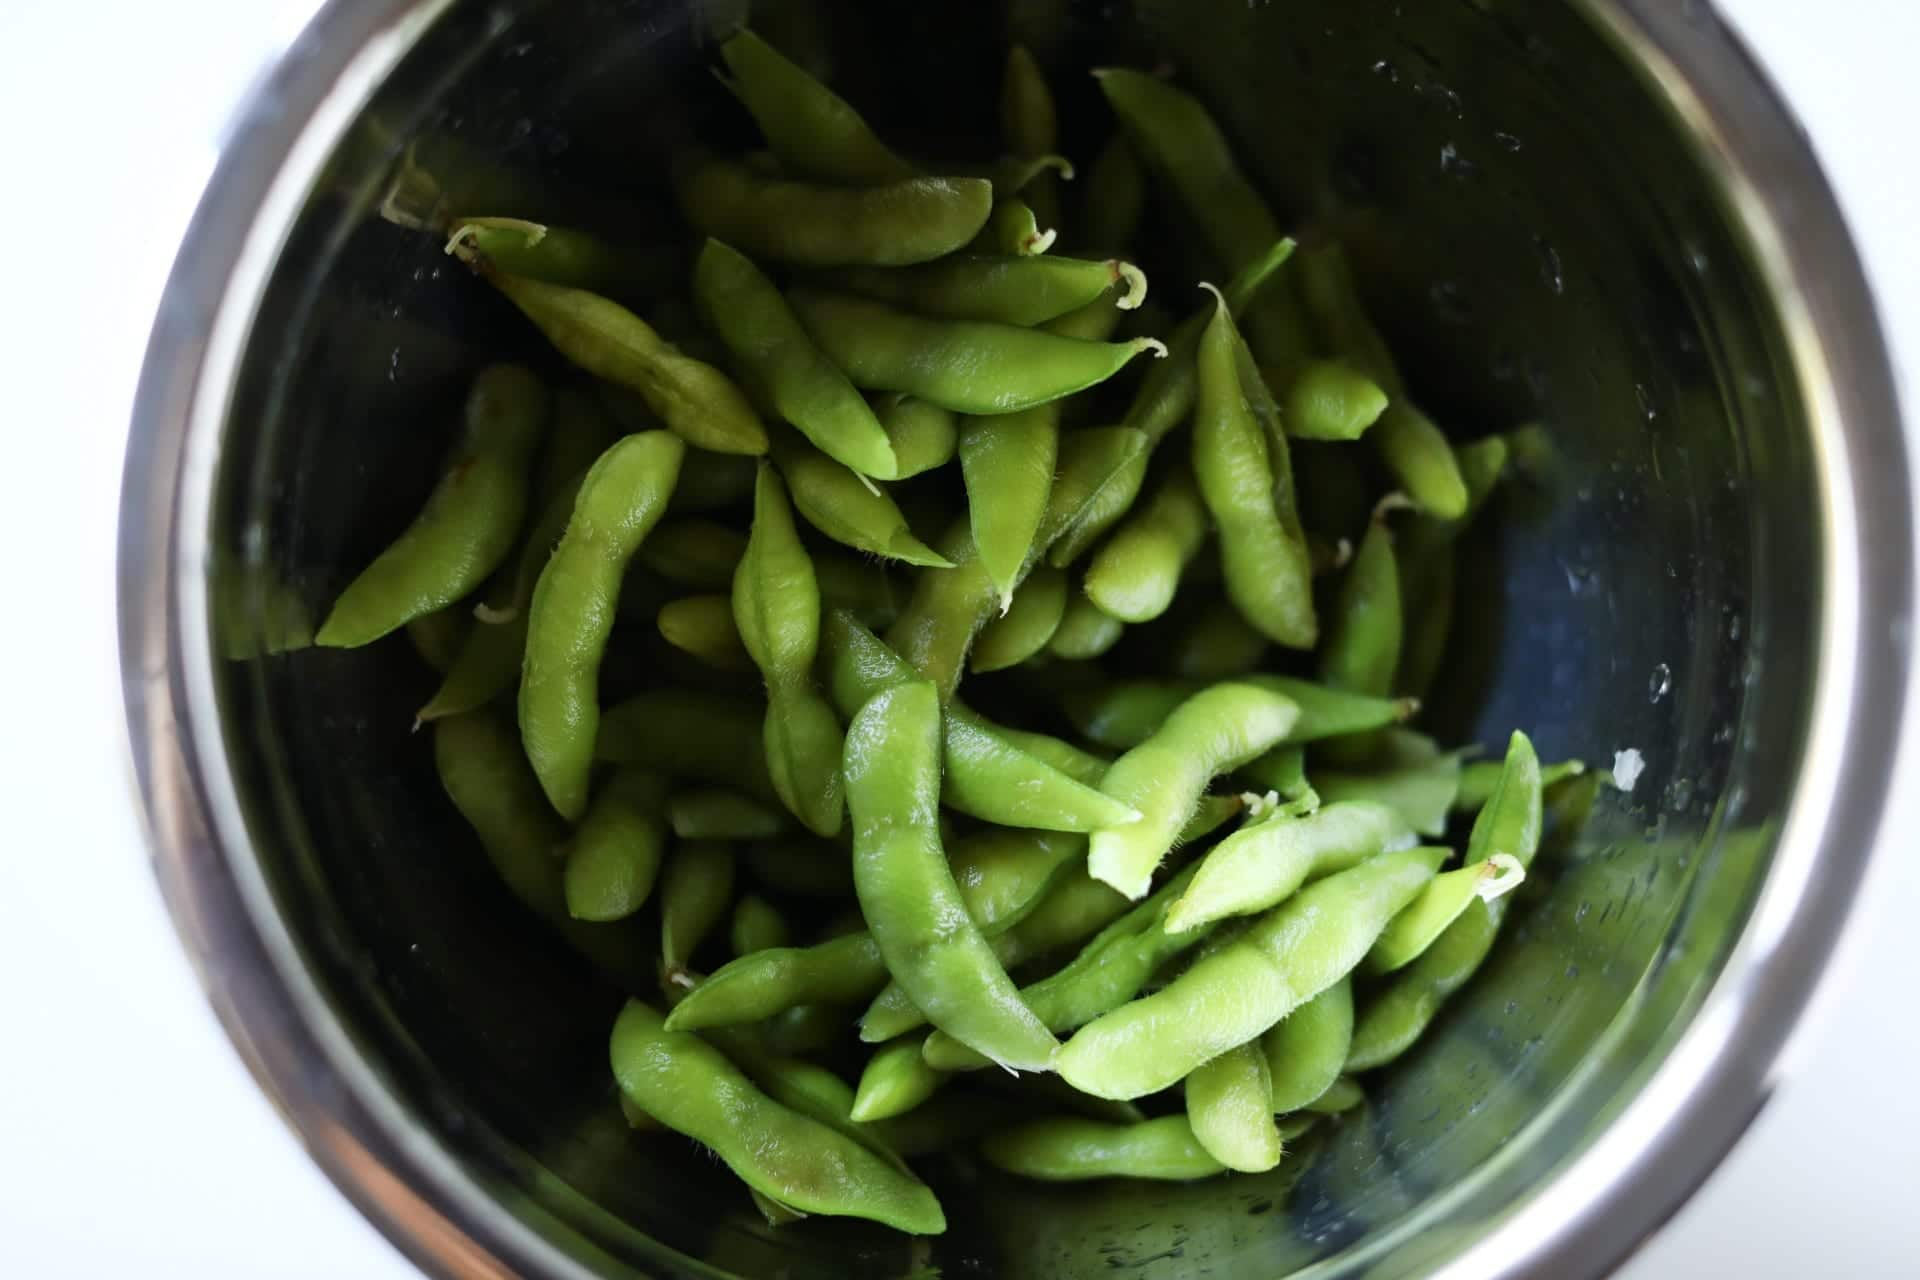 What edamame looks like after boiling it/how to cook edamame